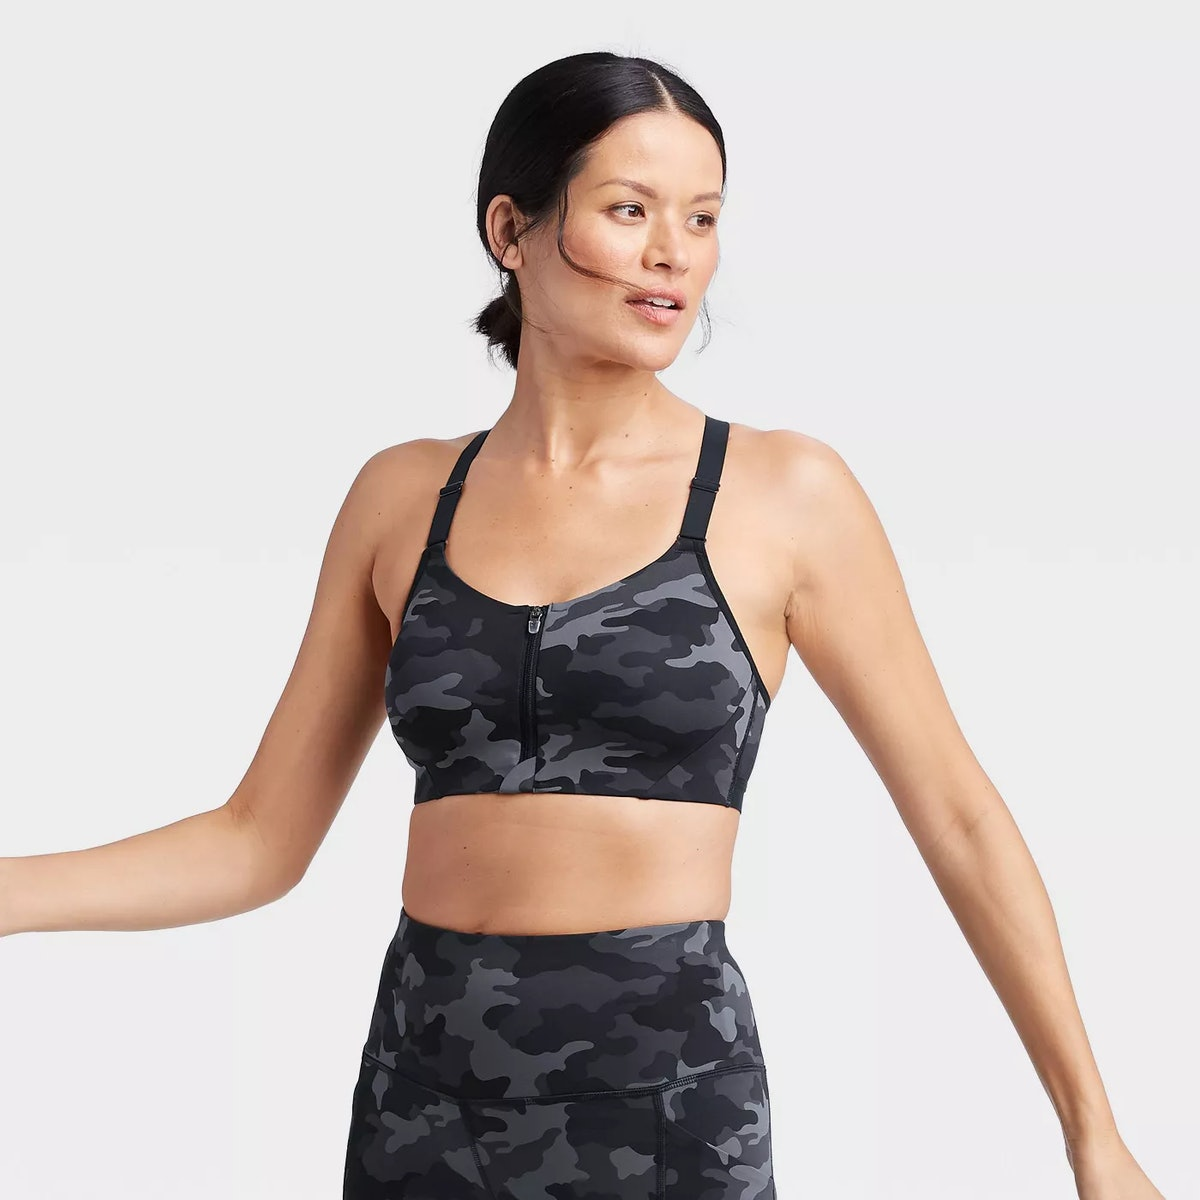 All In Motion Women's Camo Print High Support Zip Front Bra